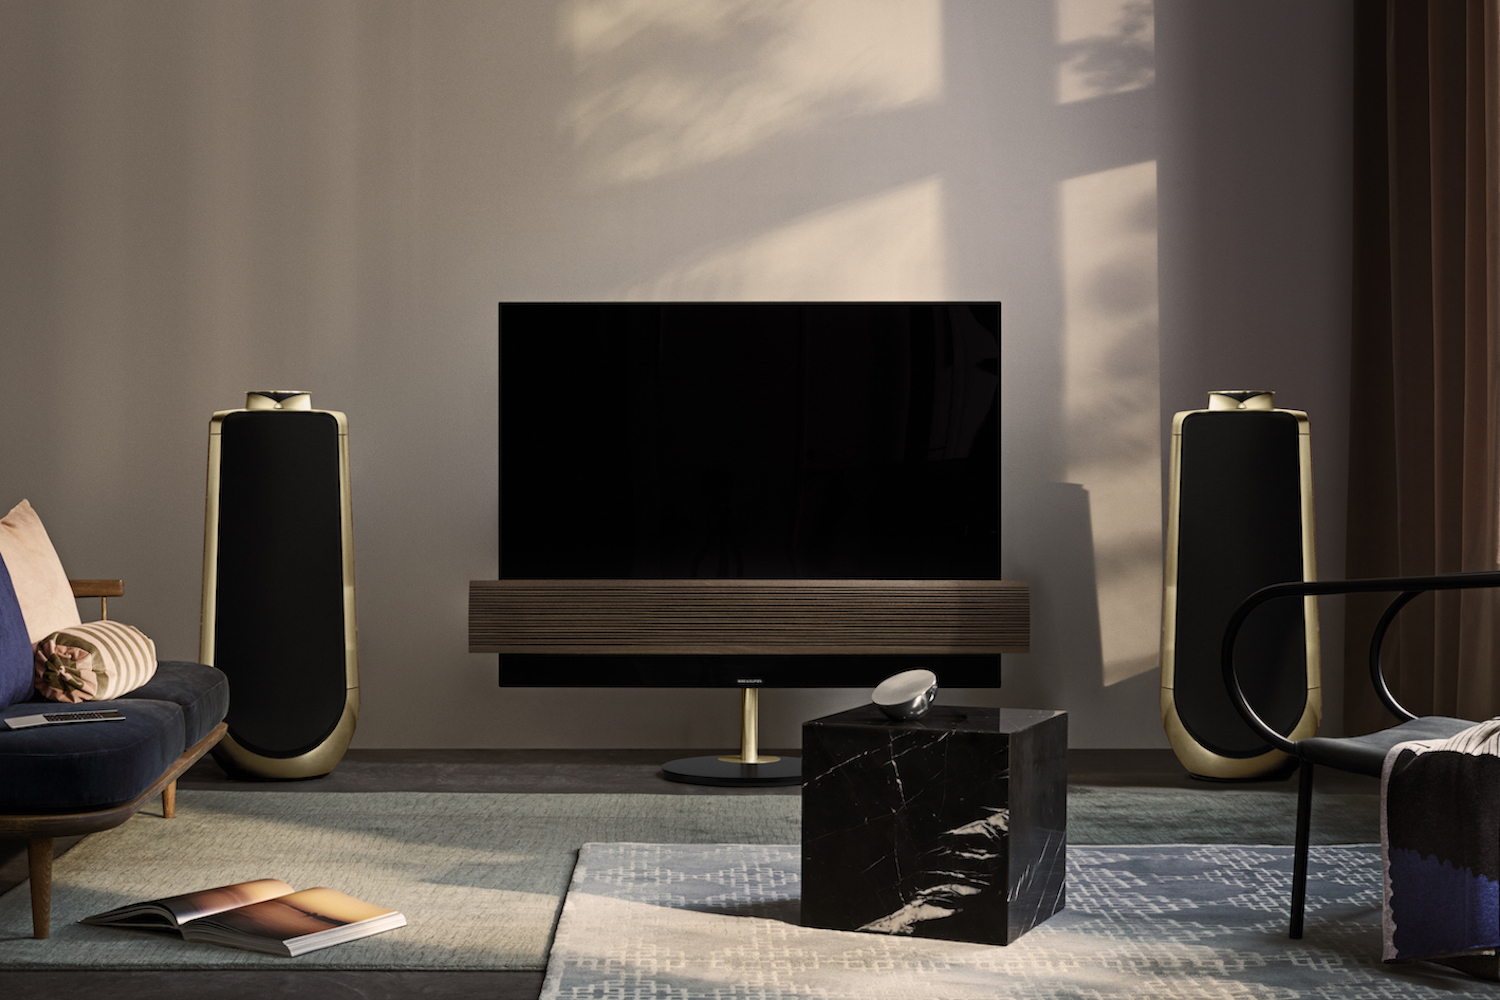 Bang Amp Olufsens Stunning OLED TV And Speaker Get A New